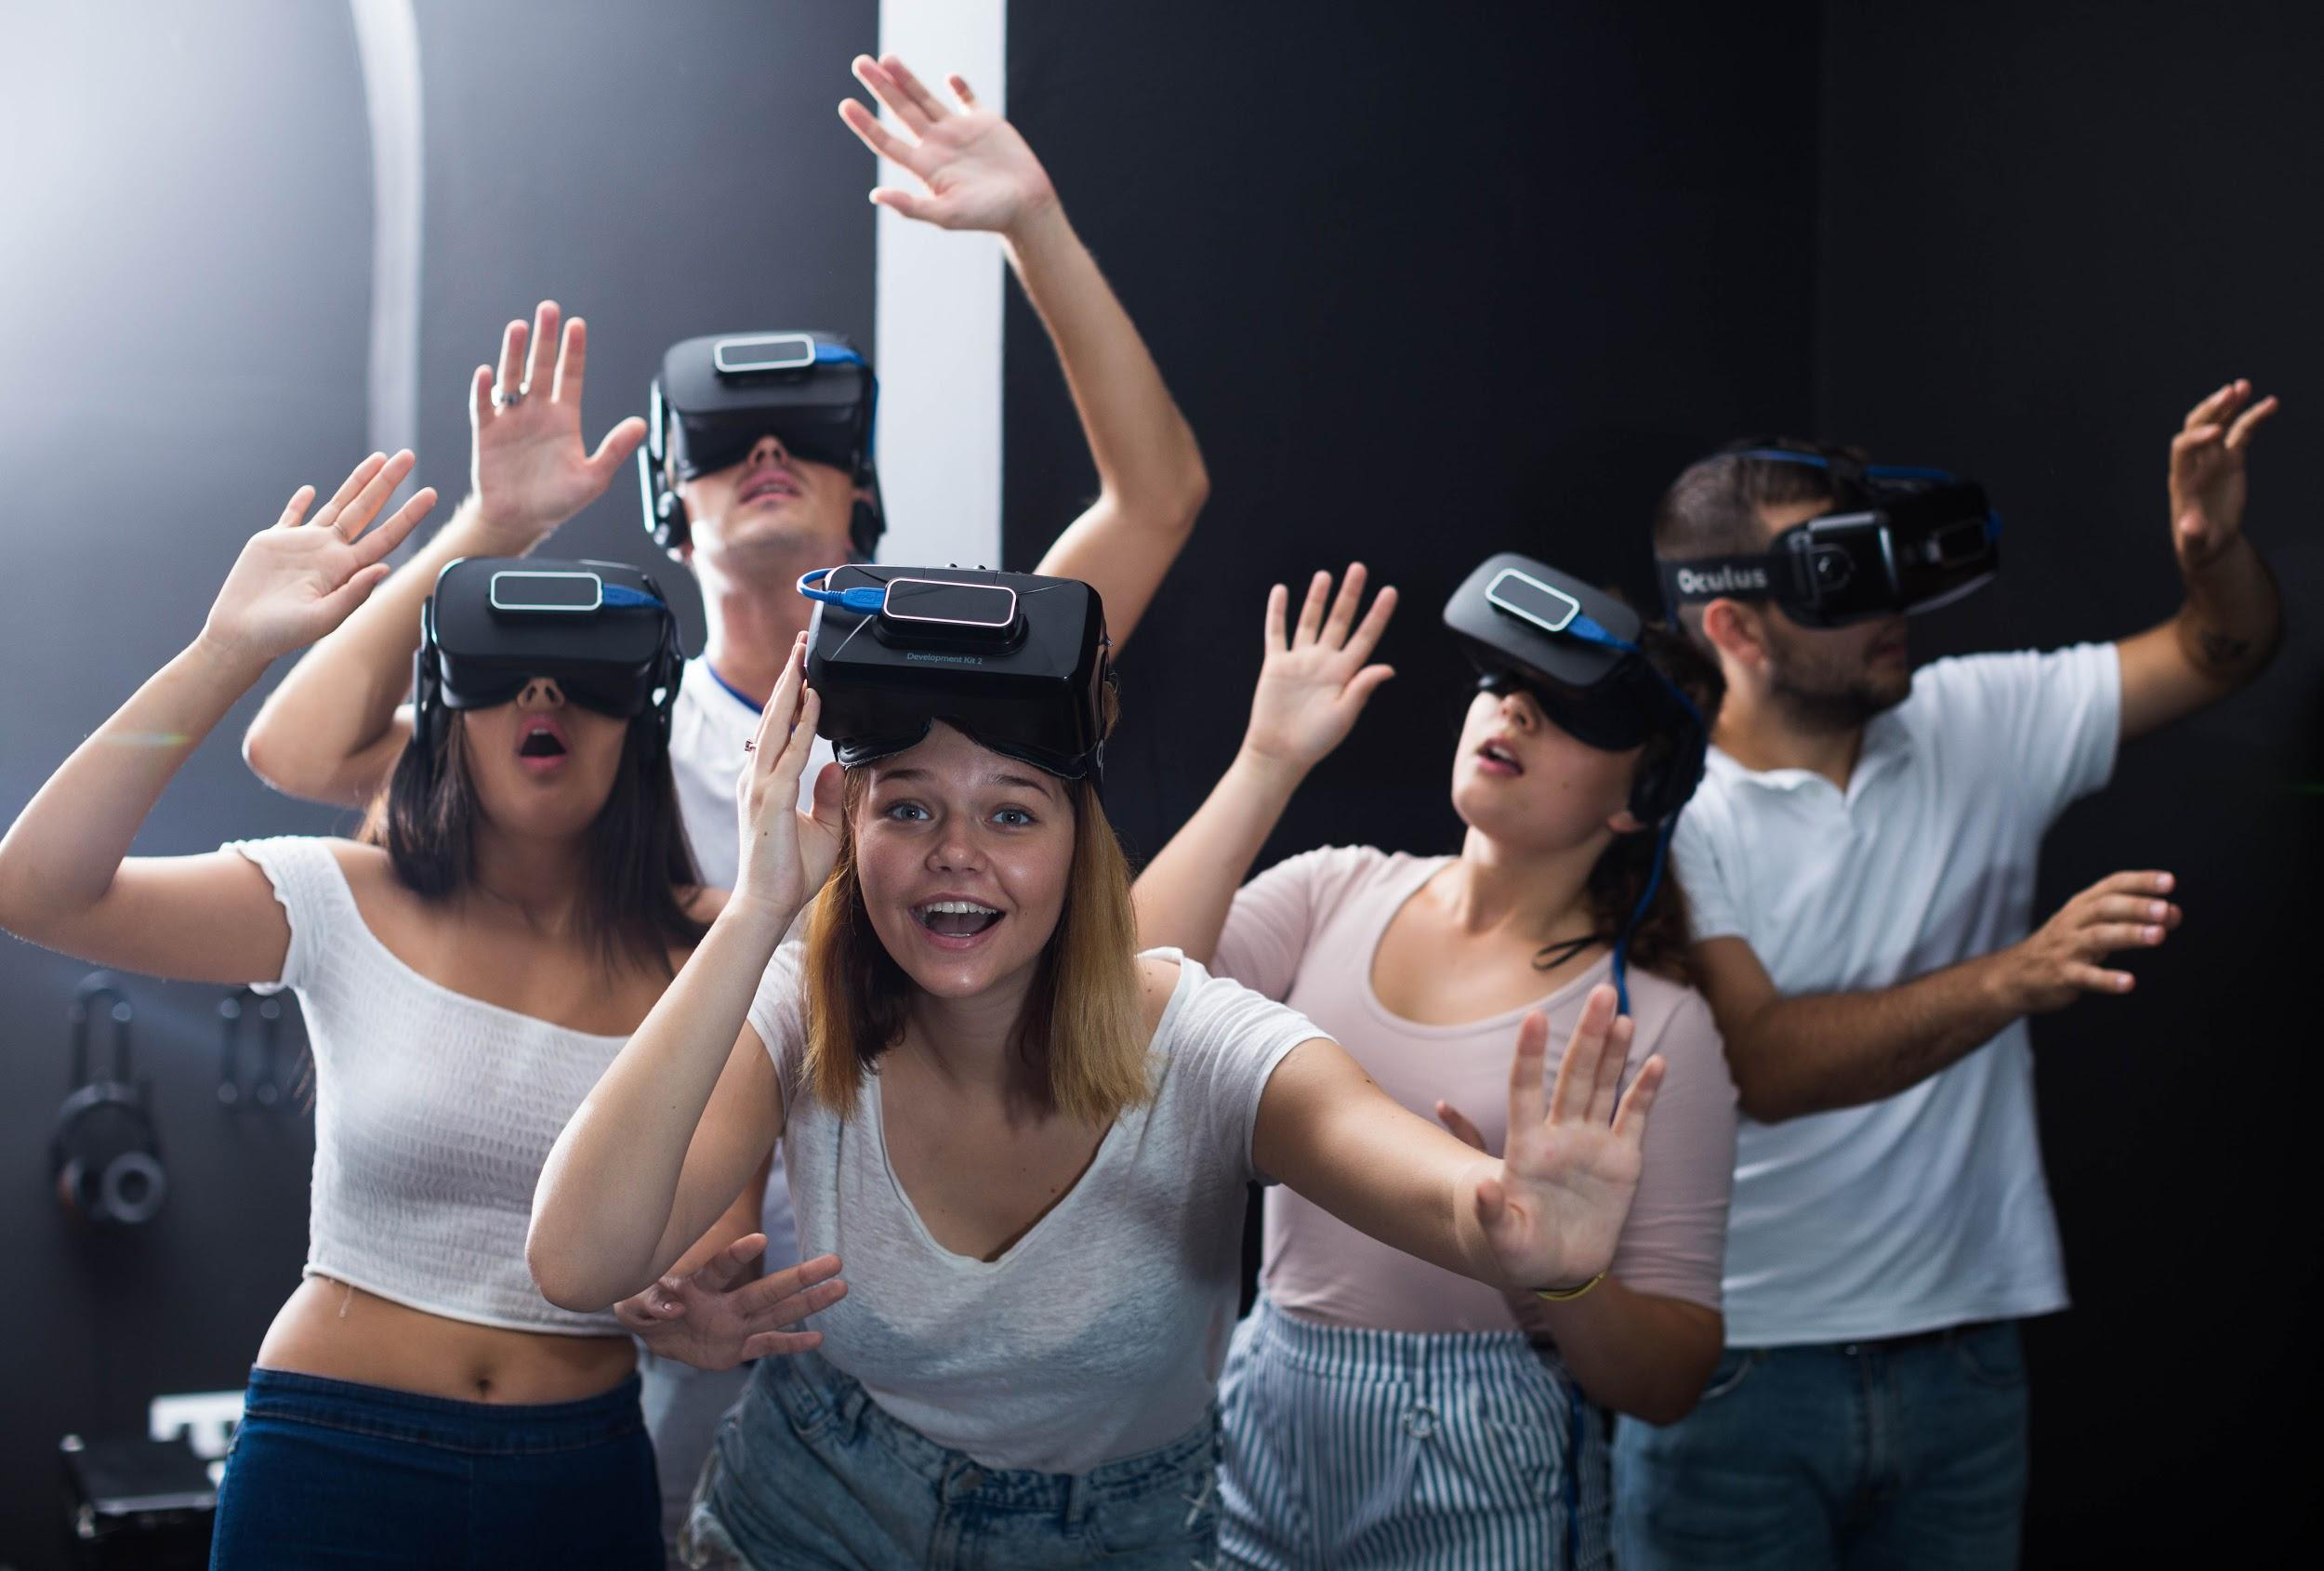 How To Market VR Games